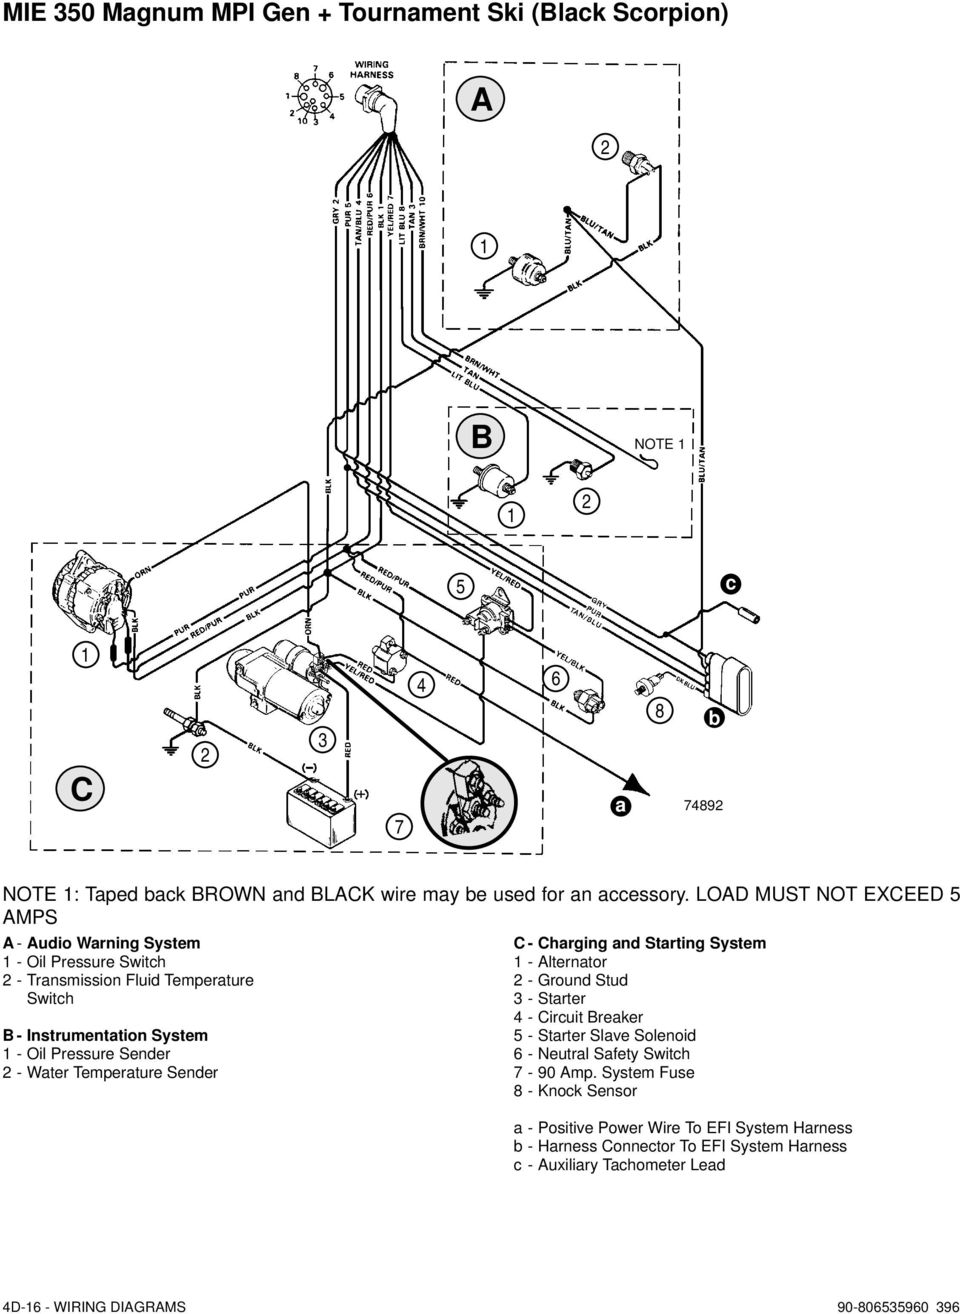 starter slave solenoid wiring diagram image collections